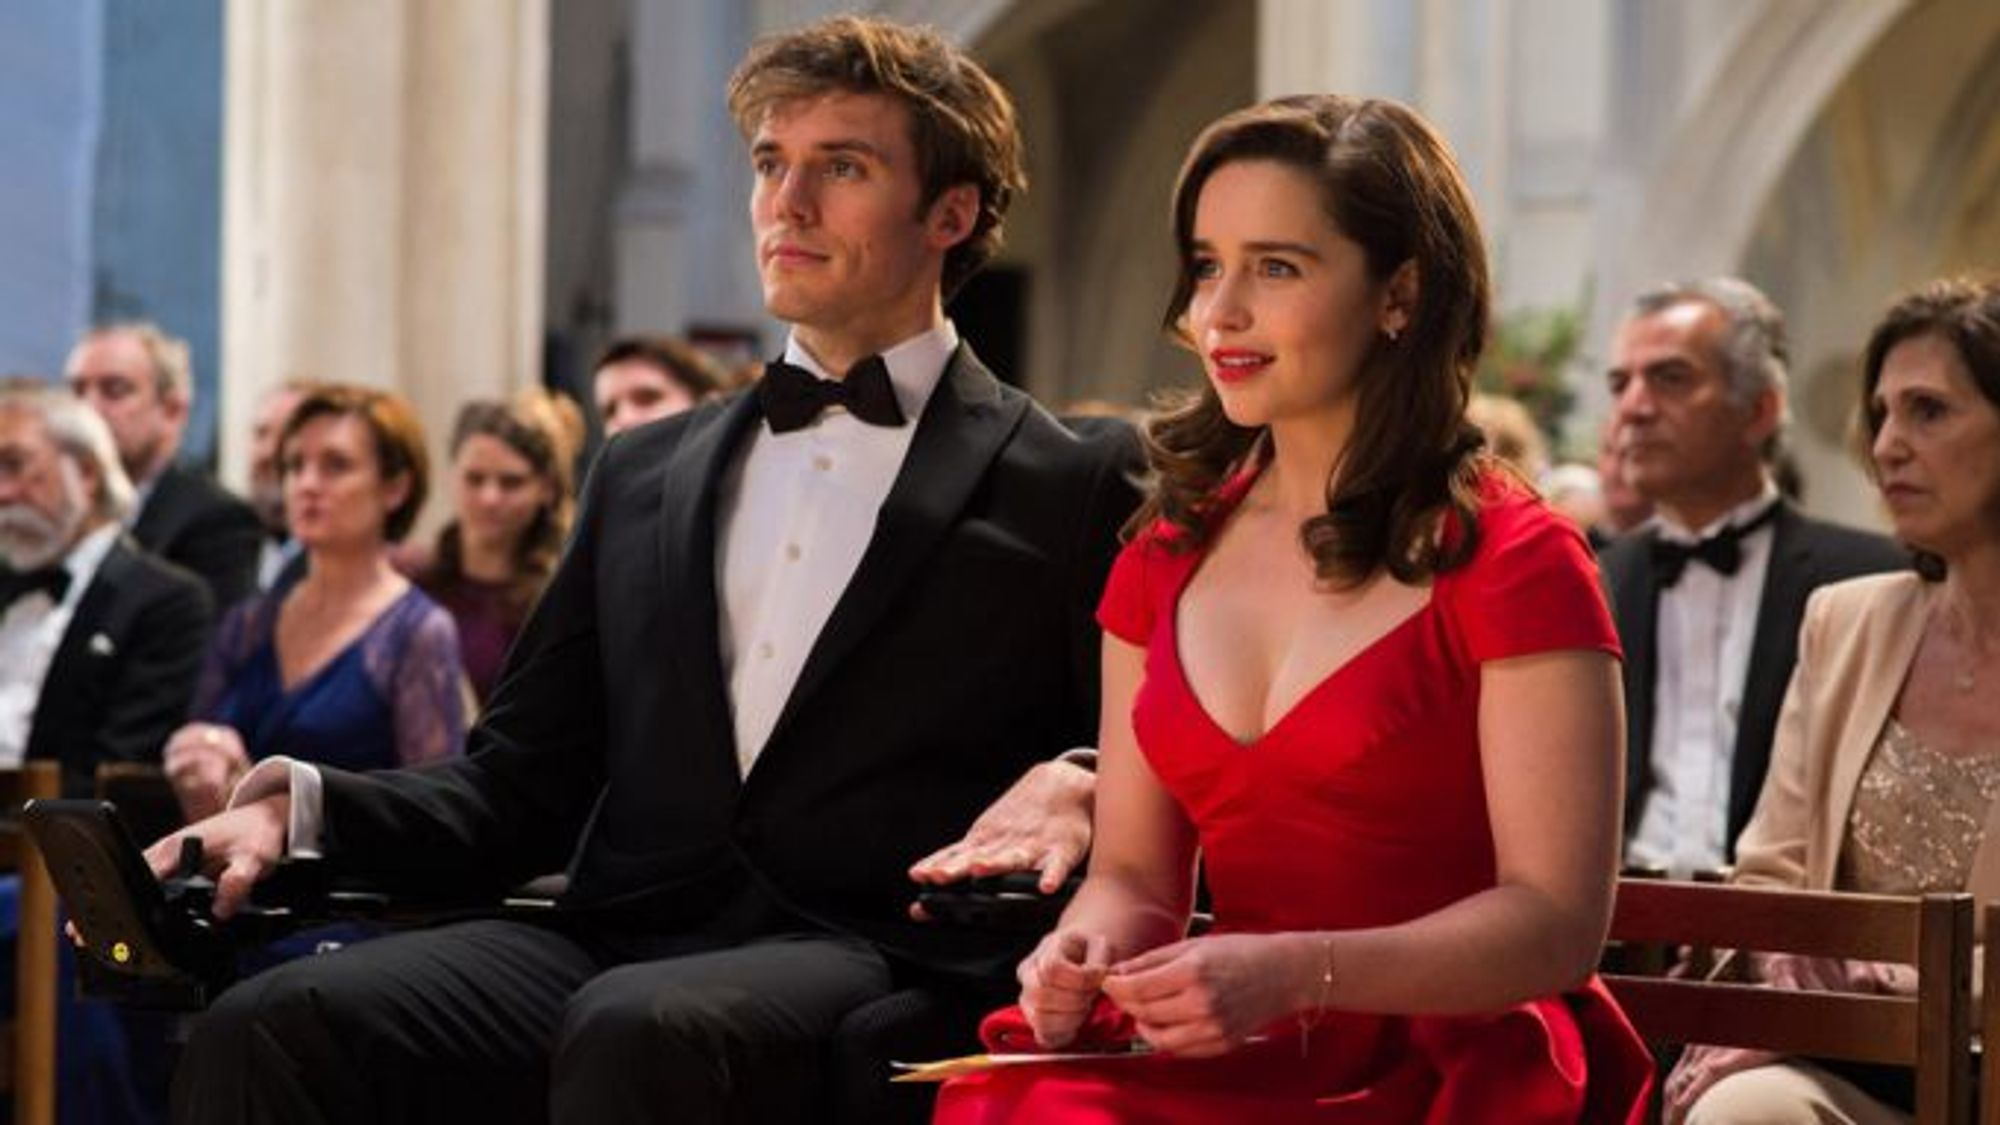 How To Watch Me Before You on Netflix: Top 3 VPN Alternatives Out There